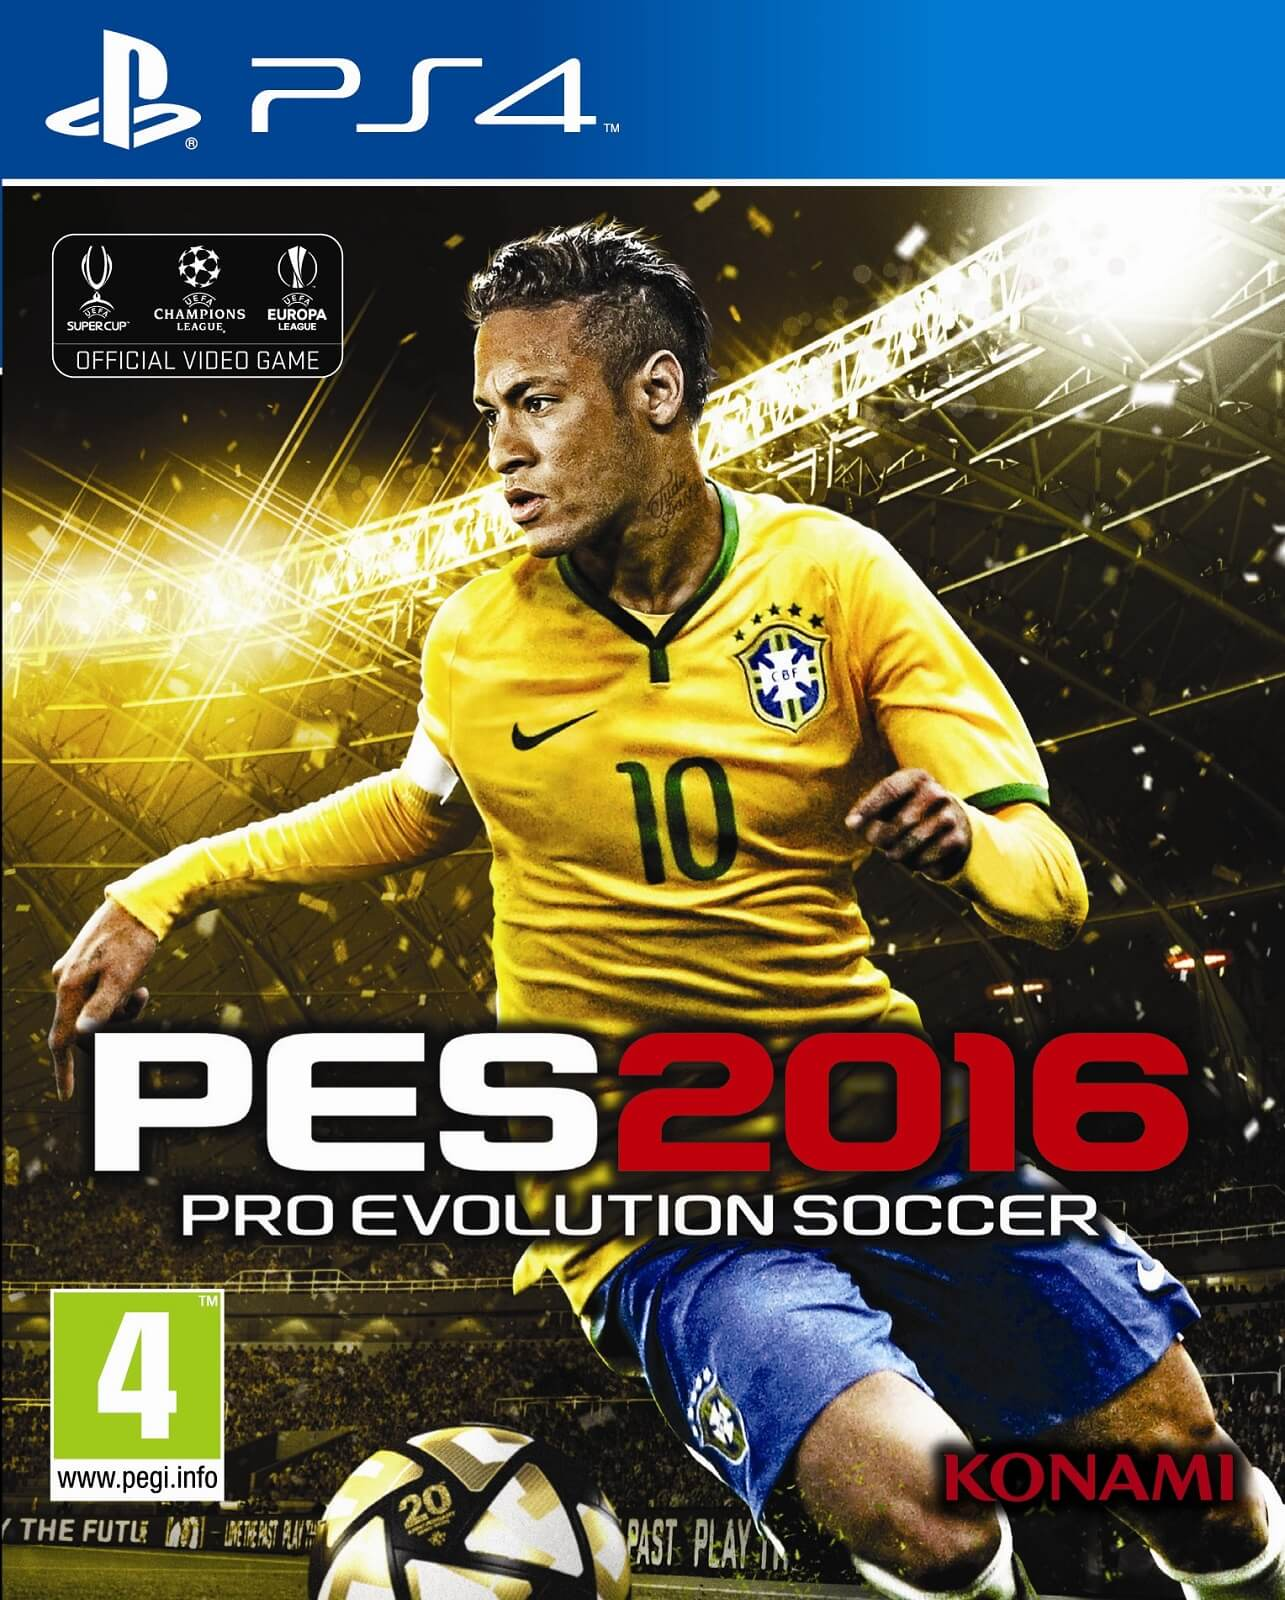 PES 2016 All update and datapack Ps4 Exploit Hack, Apps, PS3 CFW...